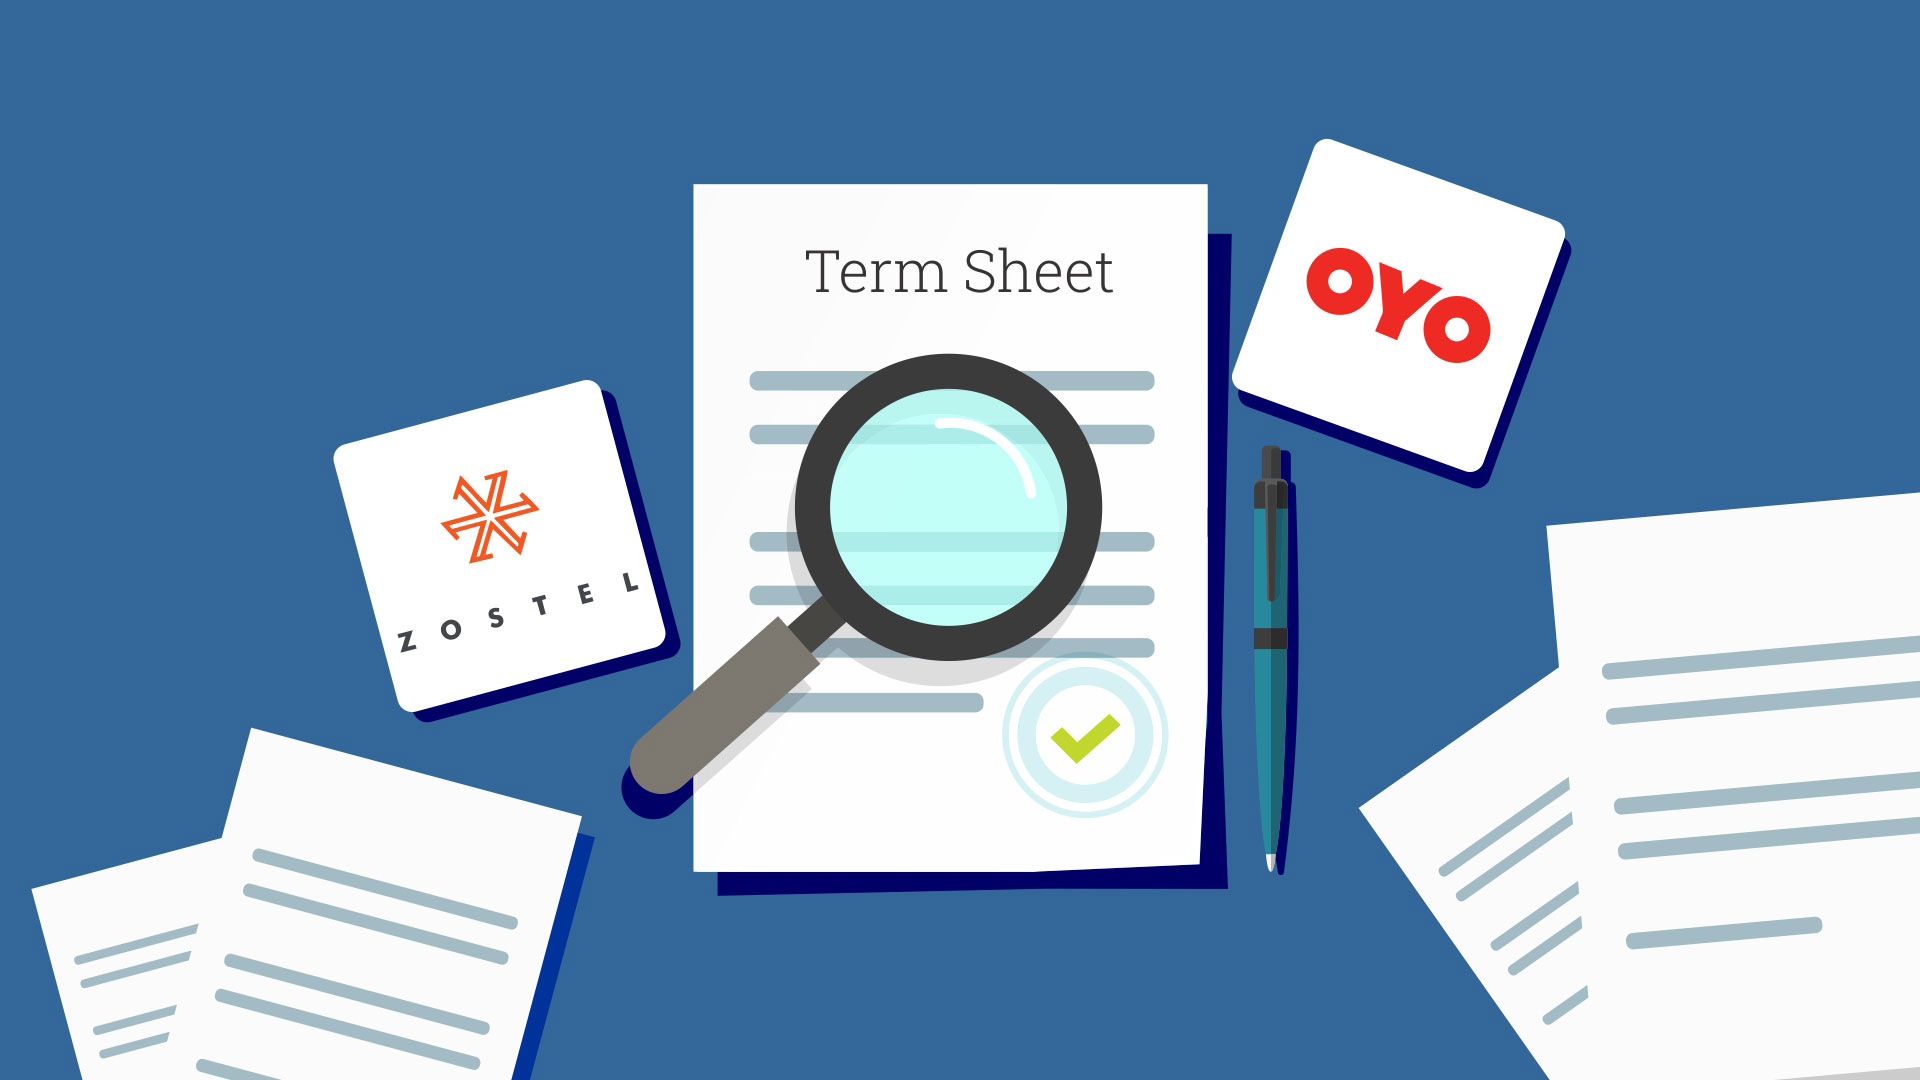 Oyo vs Zostel: Why deal term sheets should not be taken lightly